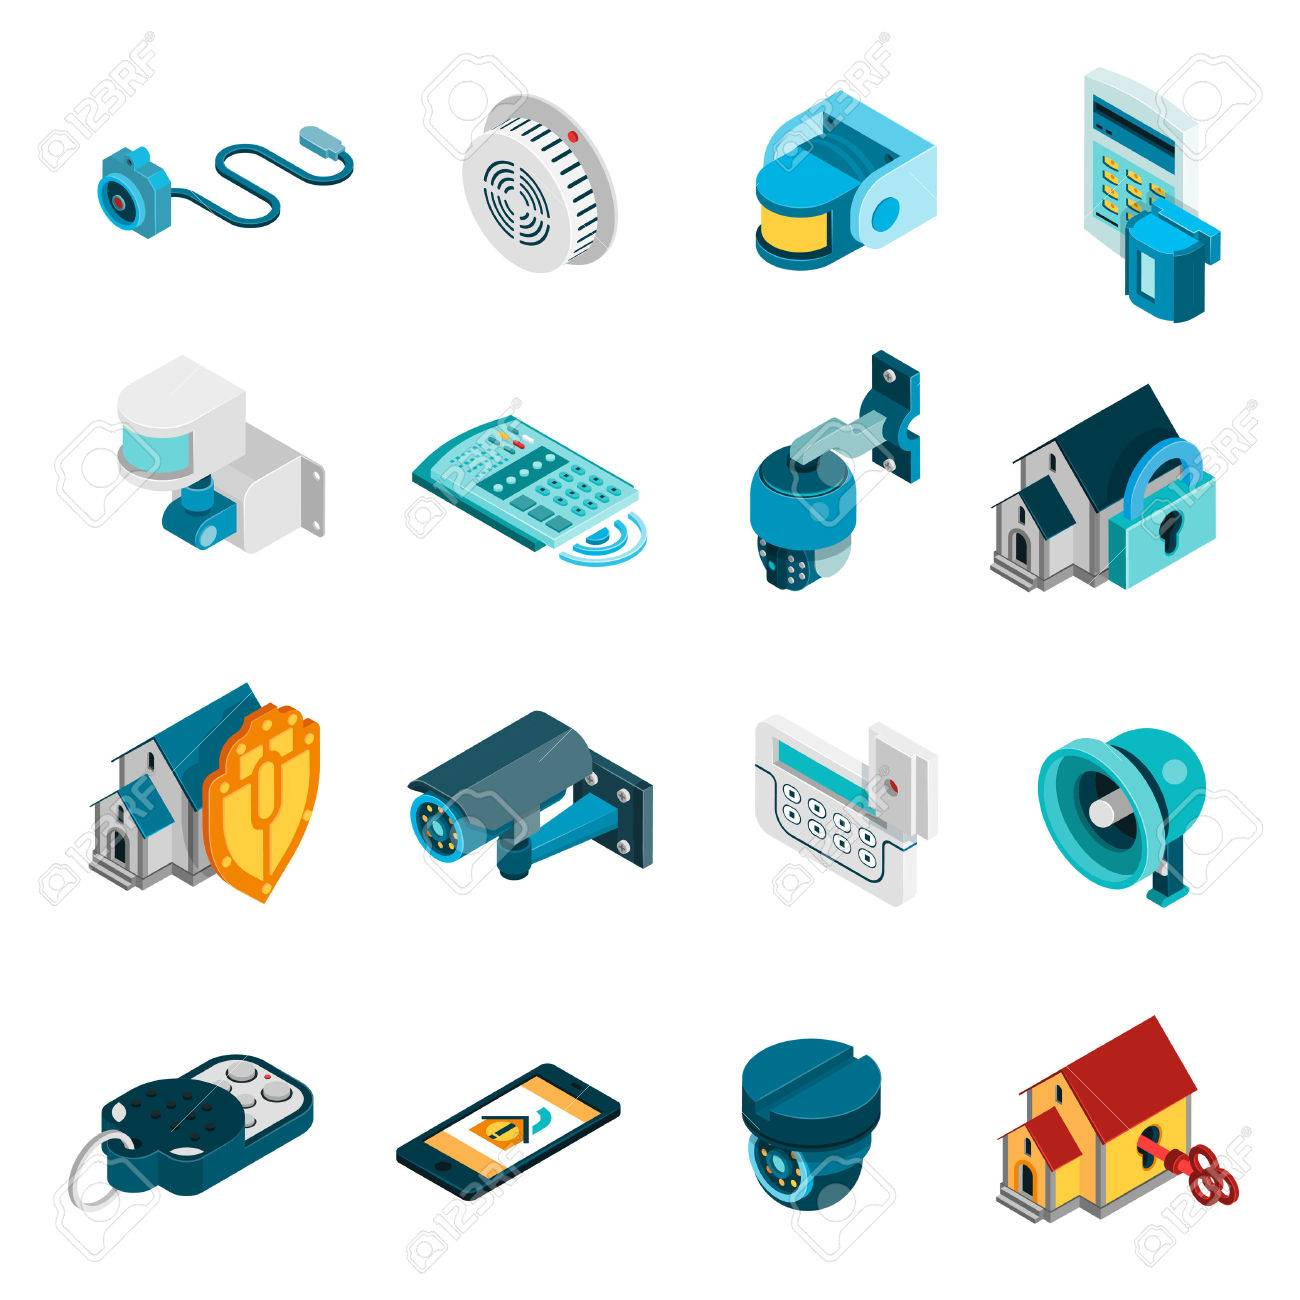 Security system isometric icons set with alarm and camera symbols isolated vector illustration - 54733400